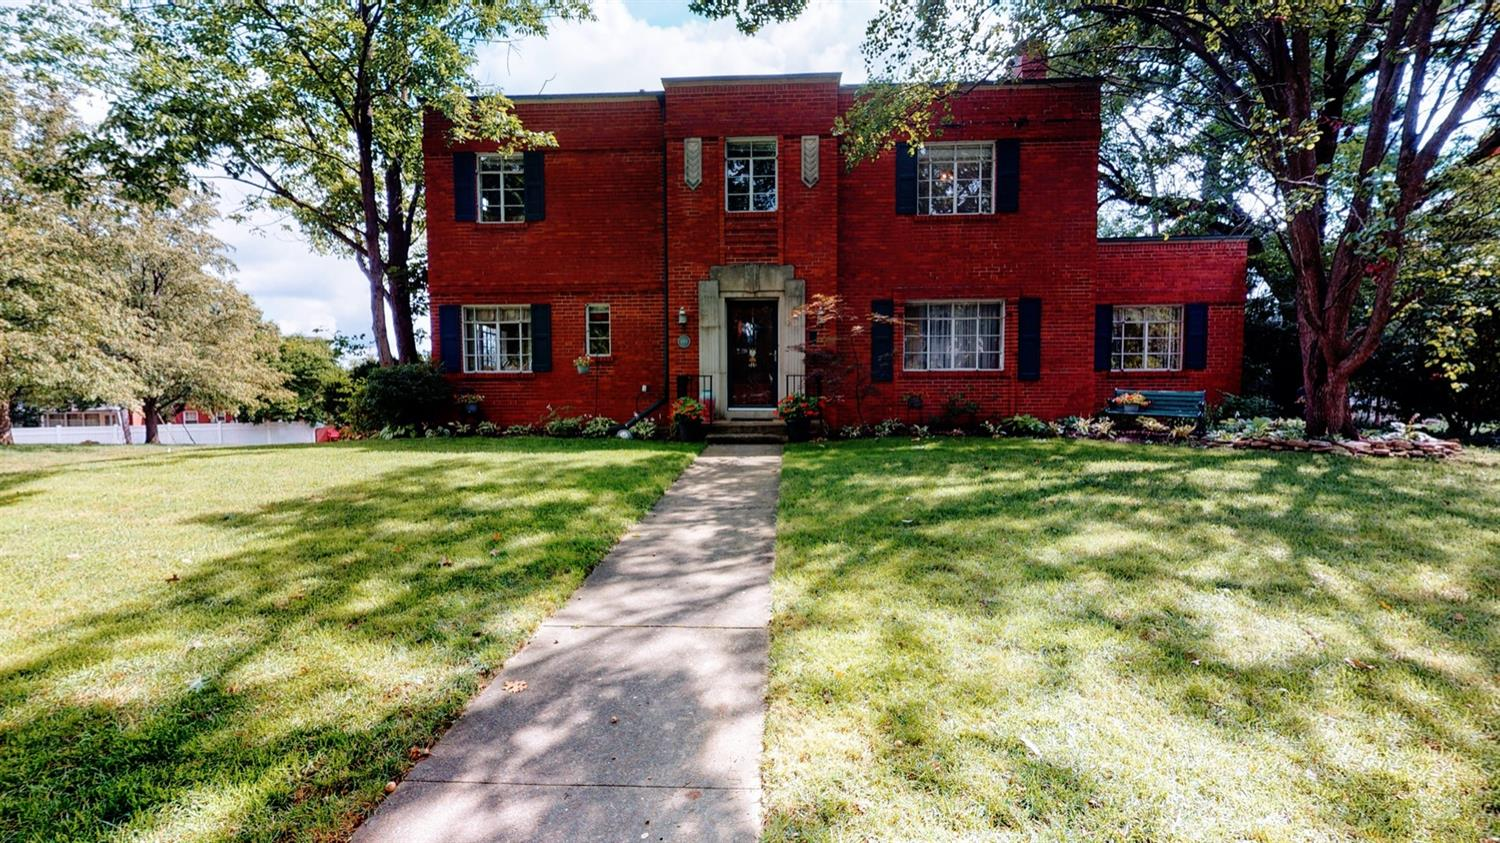 Astounding Home with tons of old charm! Complete with original fireplace with unique arched doorways throughout the home! Rare find in the prestigious highland park neighborhood. Minutes from the upcoming spooky nook. Come look, won't last long!!!!!!